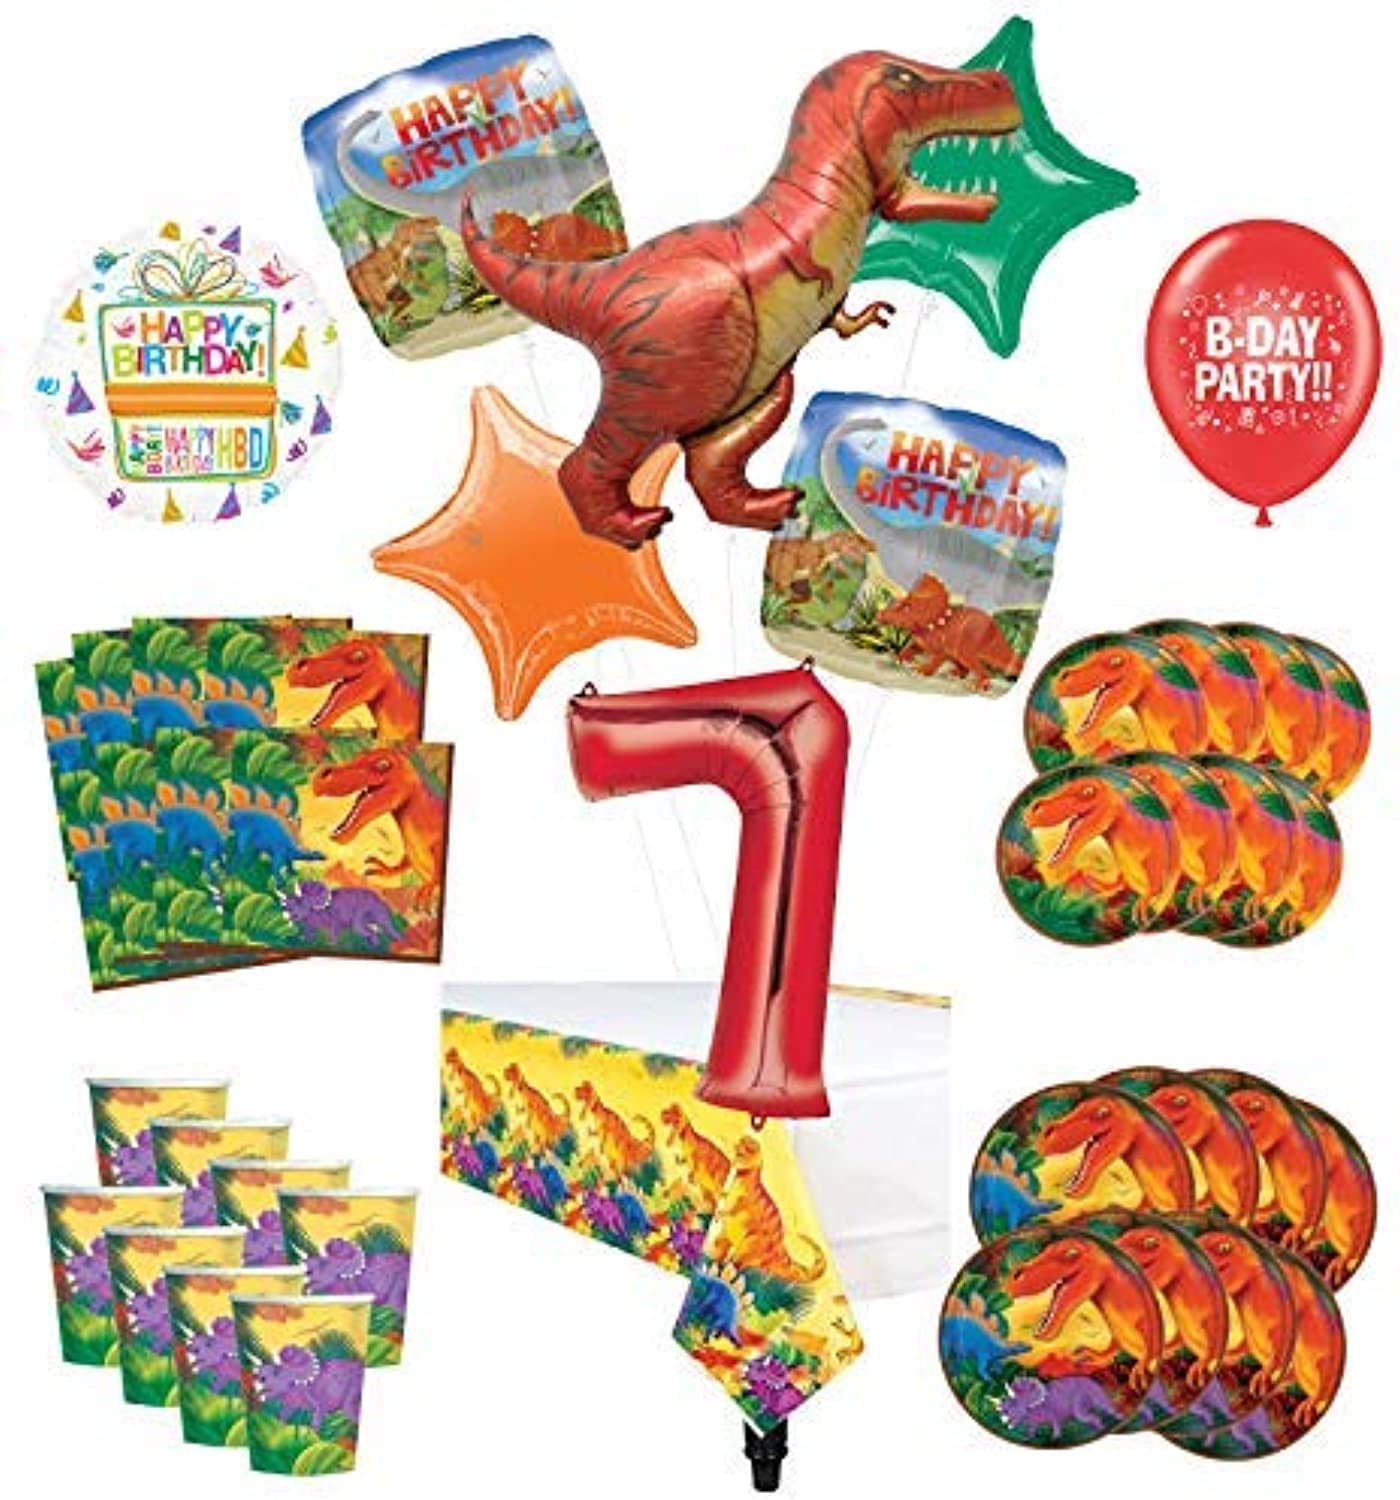 Mayflower Products Dinosaur 7th Birthday Party Supplies 8 Guest Decoration Kit and Prehistoric TRex Balloon Bouquet